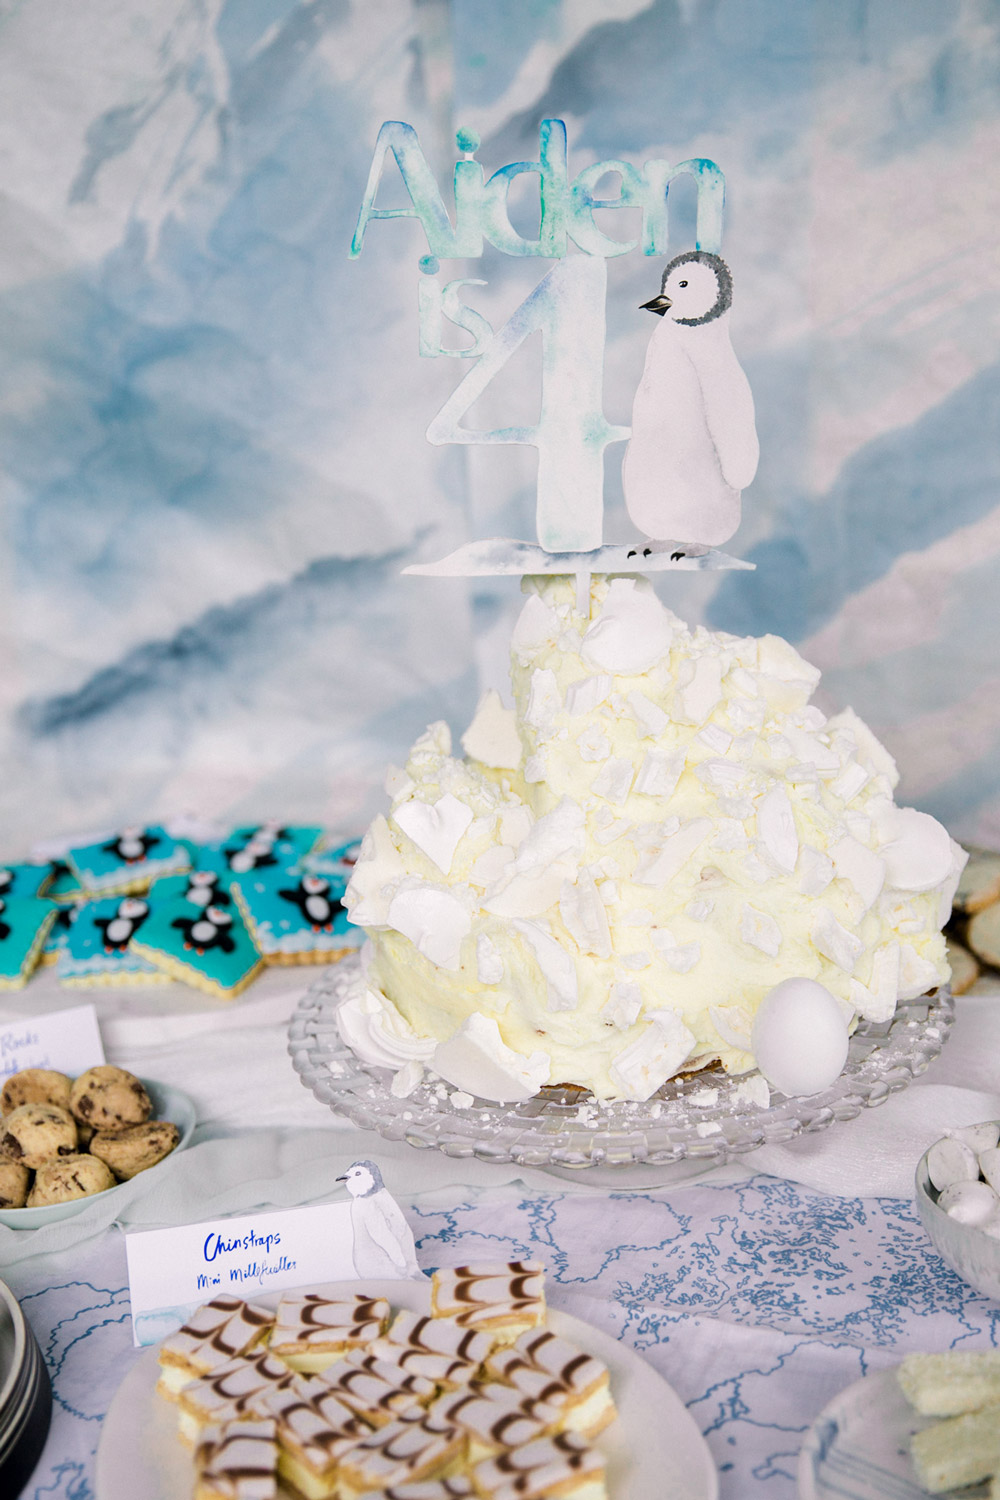 """An """"iceberg"""" cake was made for the central birthday cake, shards of meringue embedded in the frosting were used to indicate ice and the custom cake topper represented the penguin."""